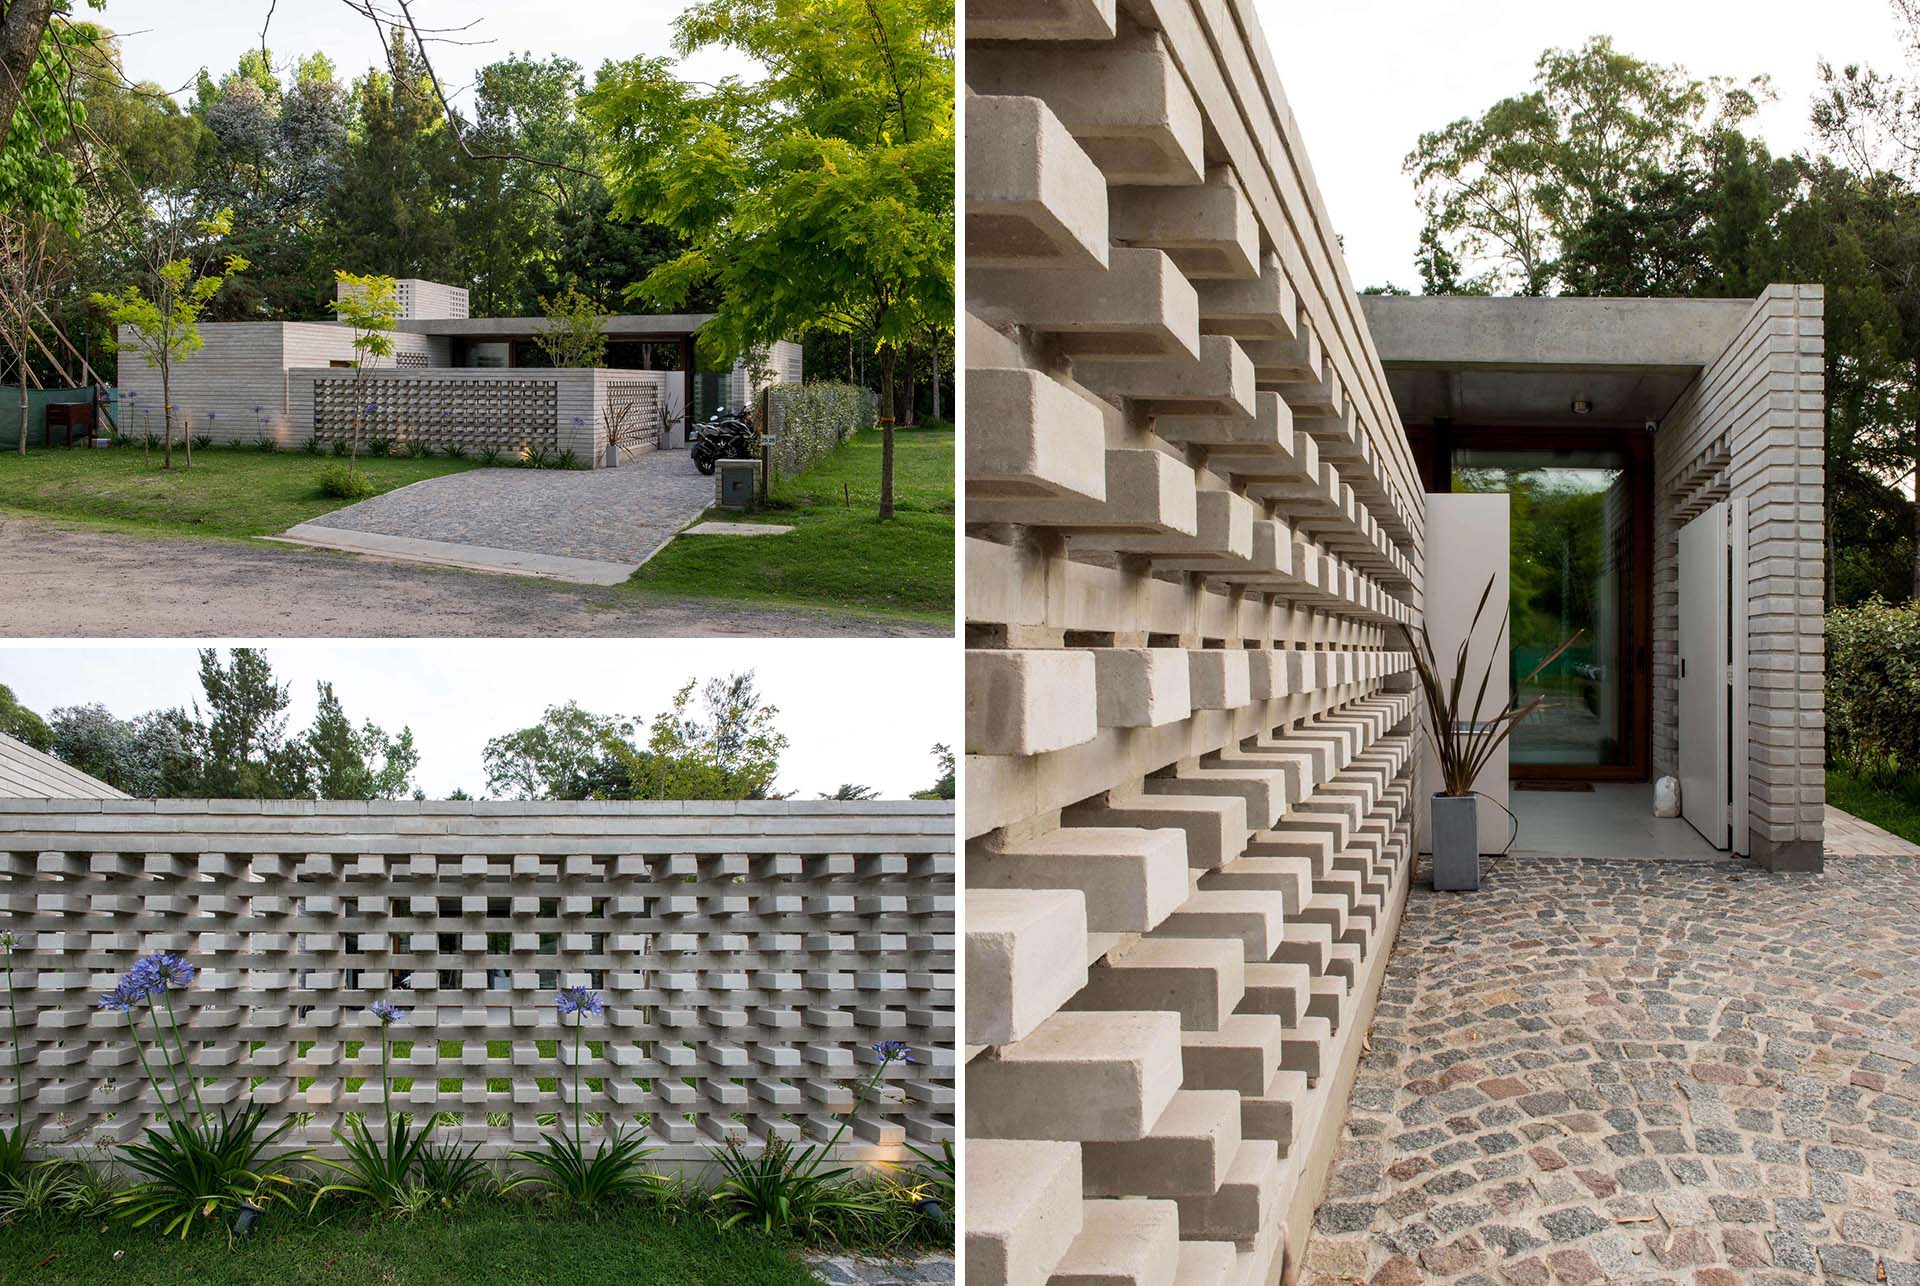 A concrete block wall that provides privacy for a modern home.